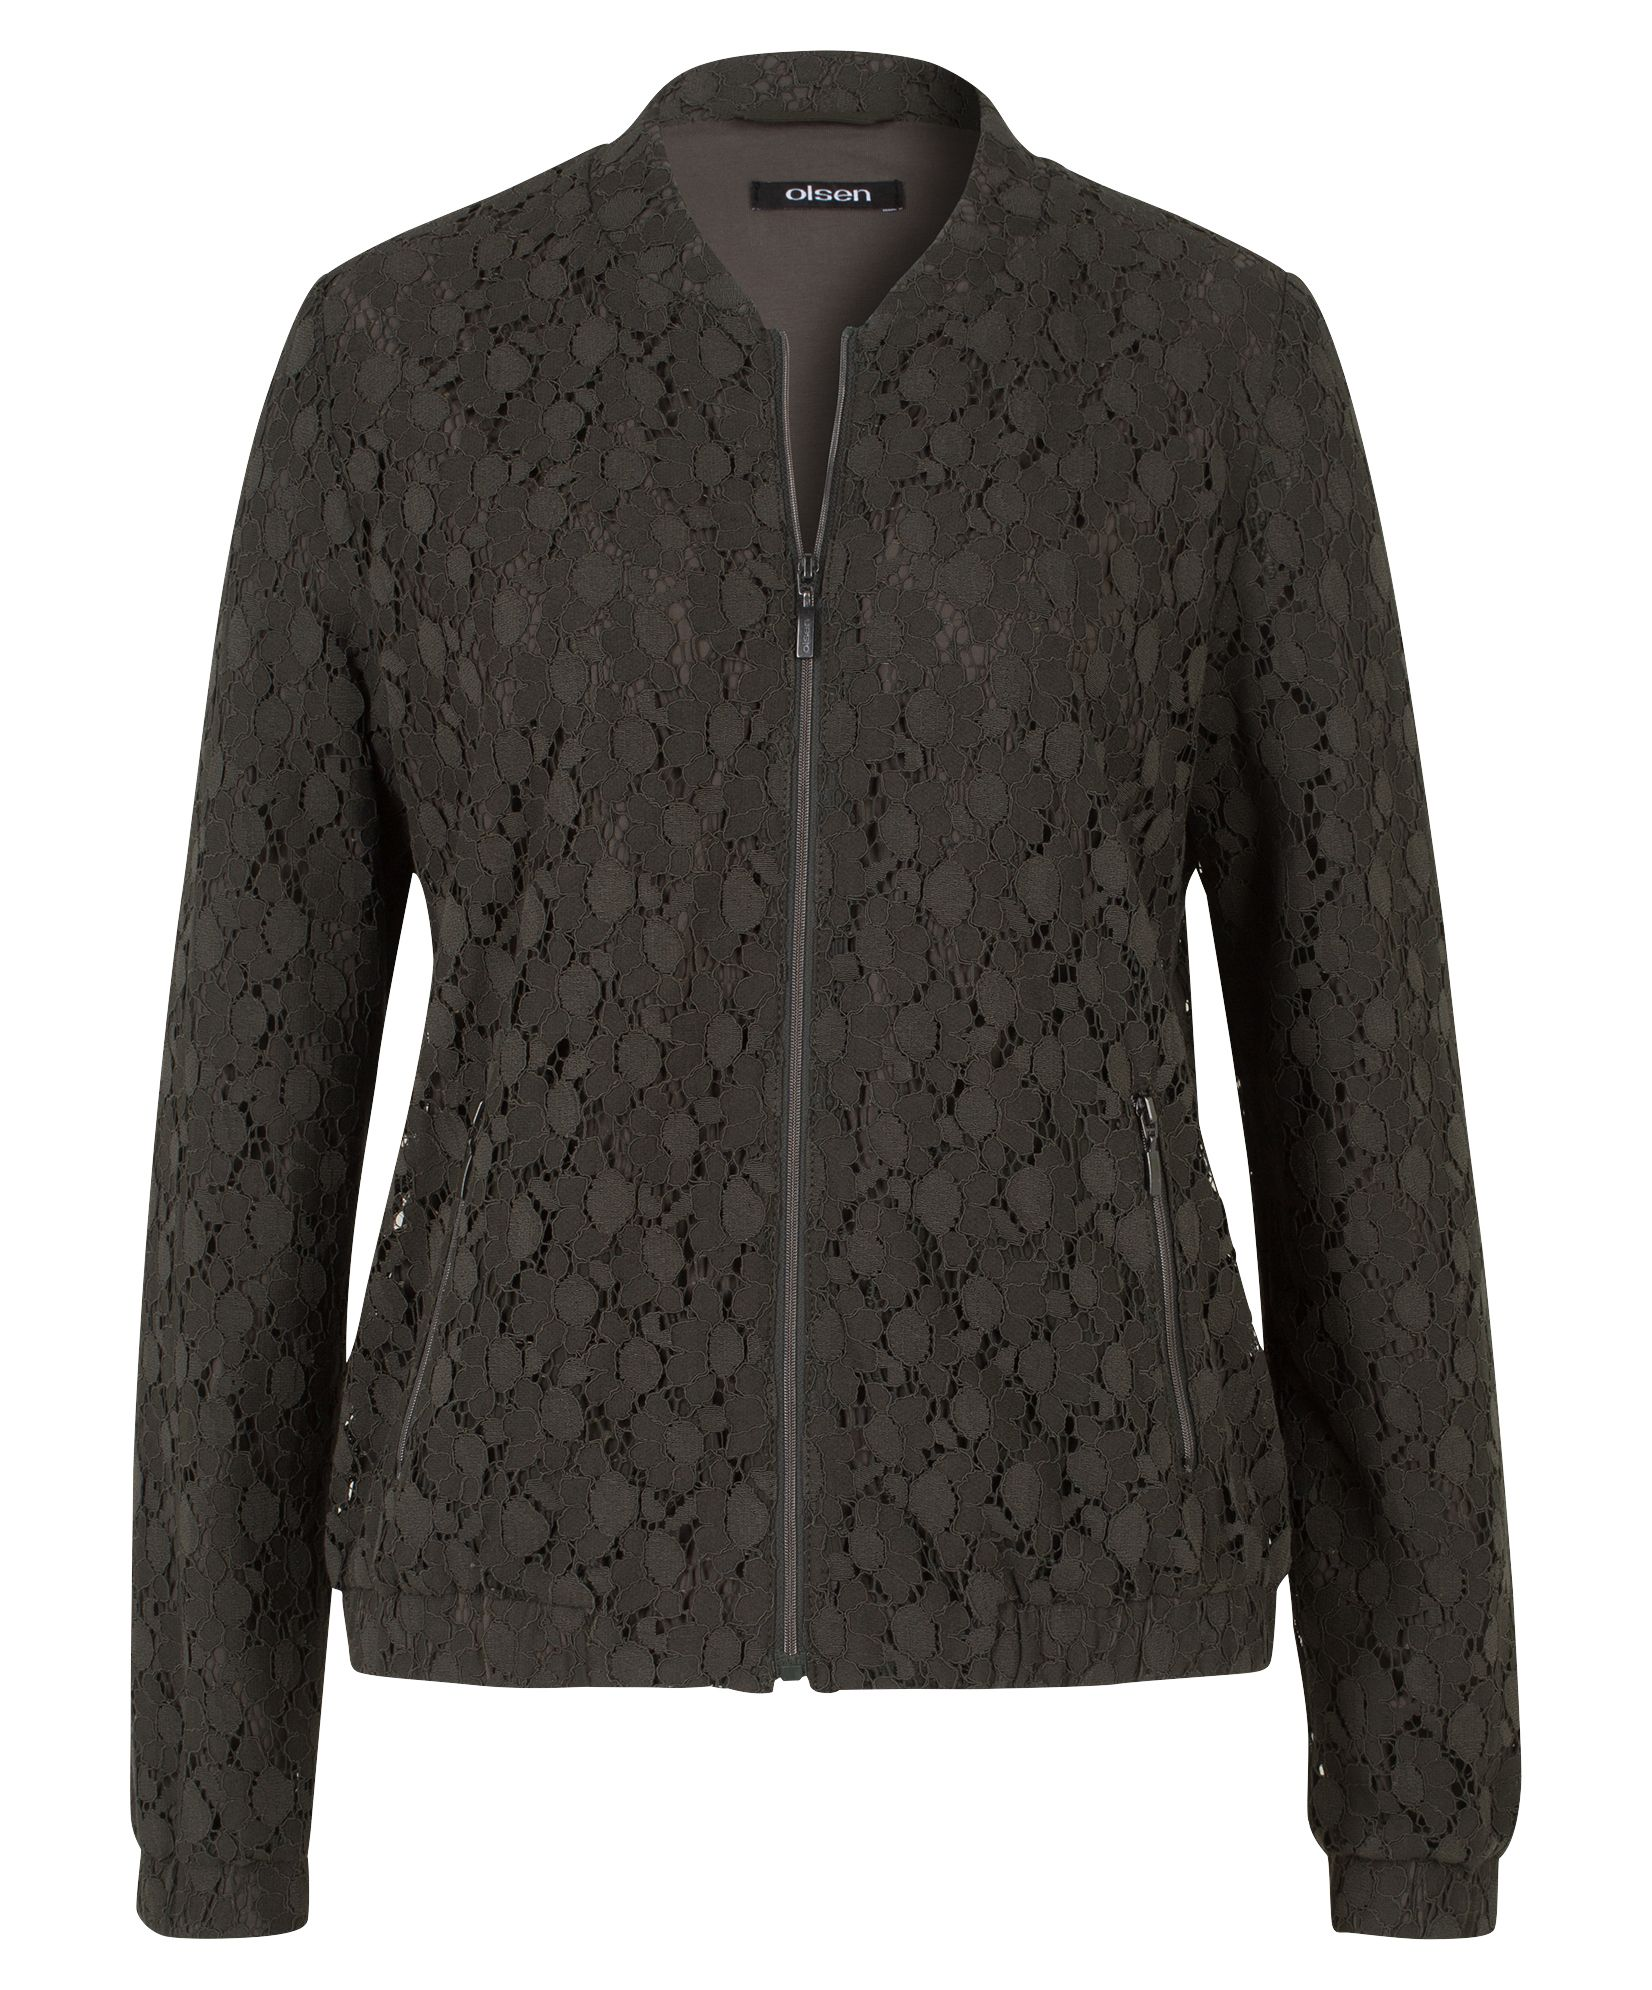 Olsen Blouson With Lace, Grey